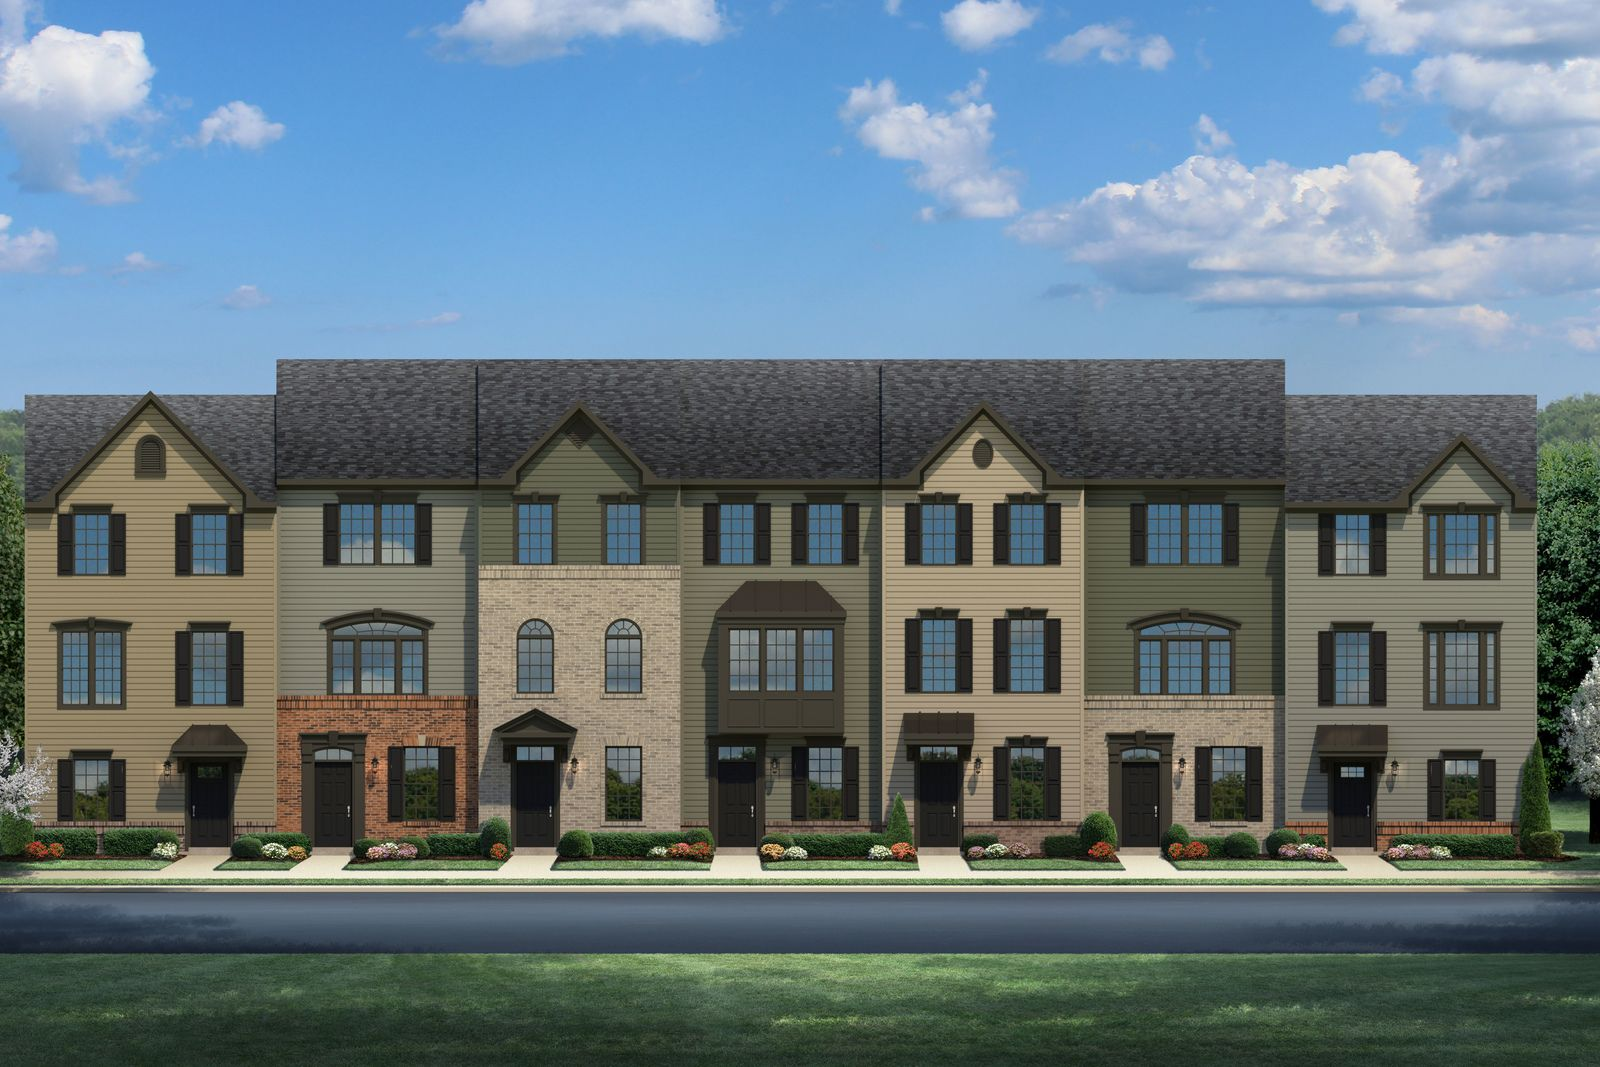 BRAND NEW GARAGE TOWNHOMES ARE NOW OPEN FROM THE LOW $300S:Fredericksburg Park features garage townhomes only 1 mile from historic downtown shops, dining, the VRE and 2 miles from I-95! Quit renting and own now.Click here to schedule your visit.